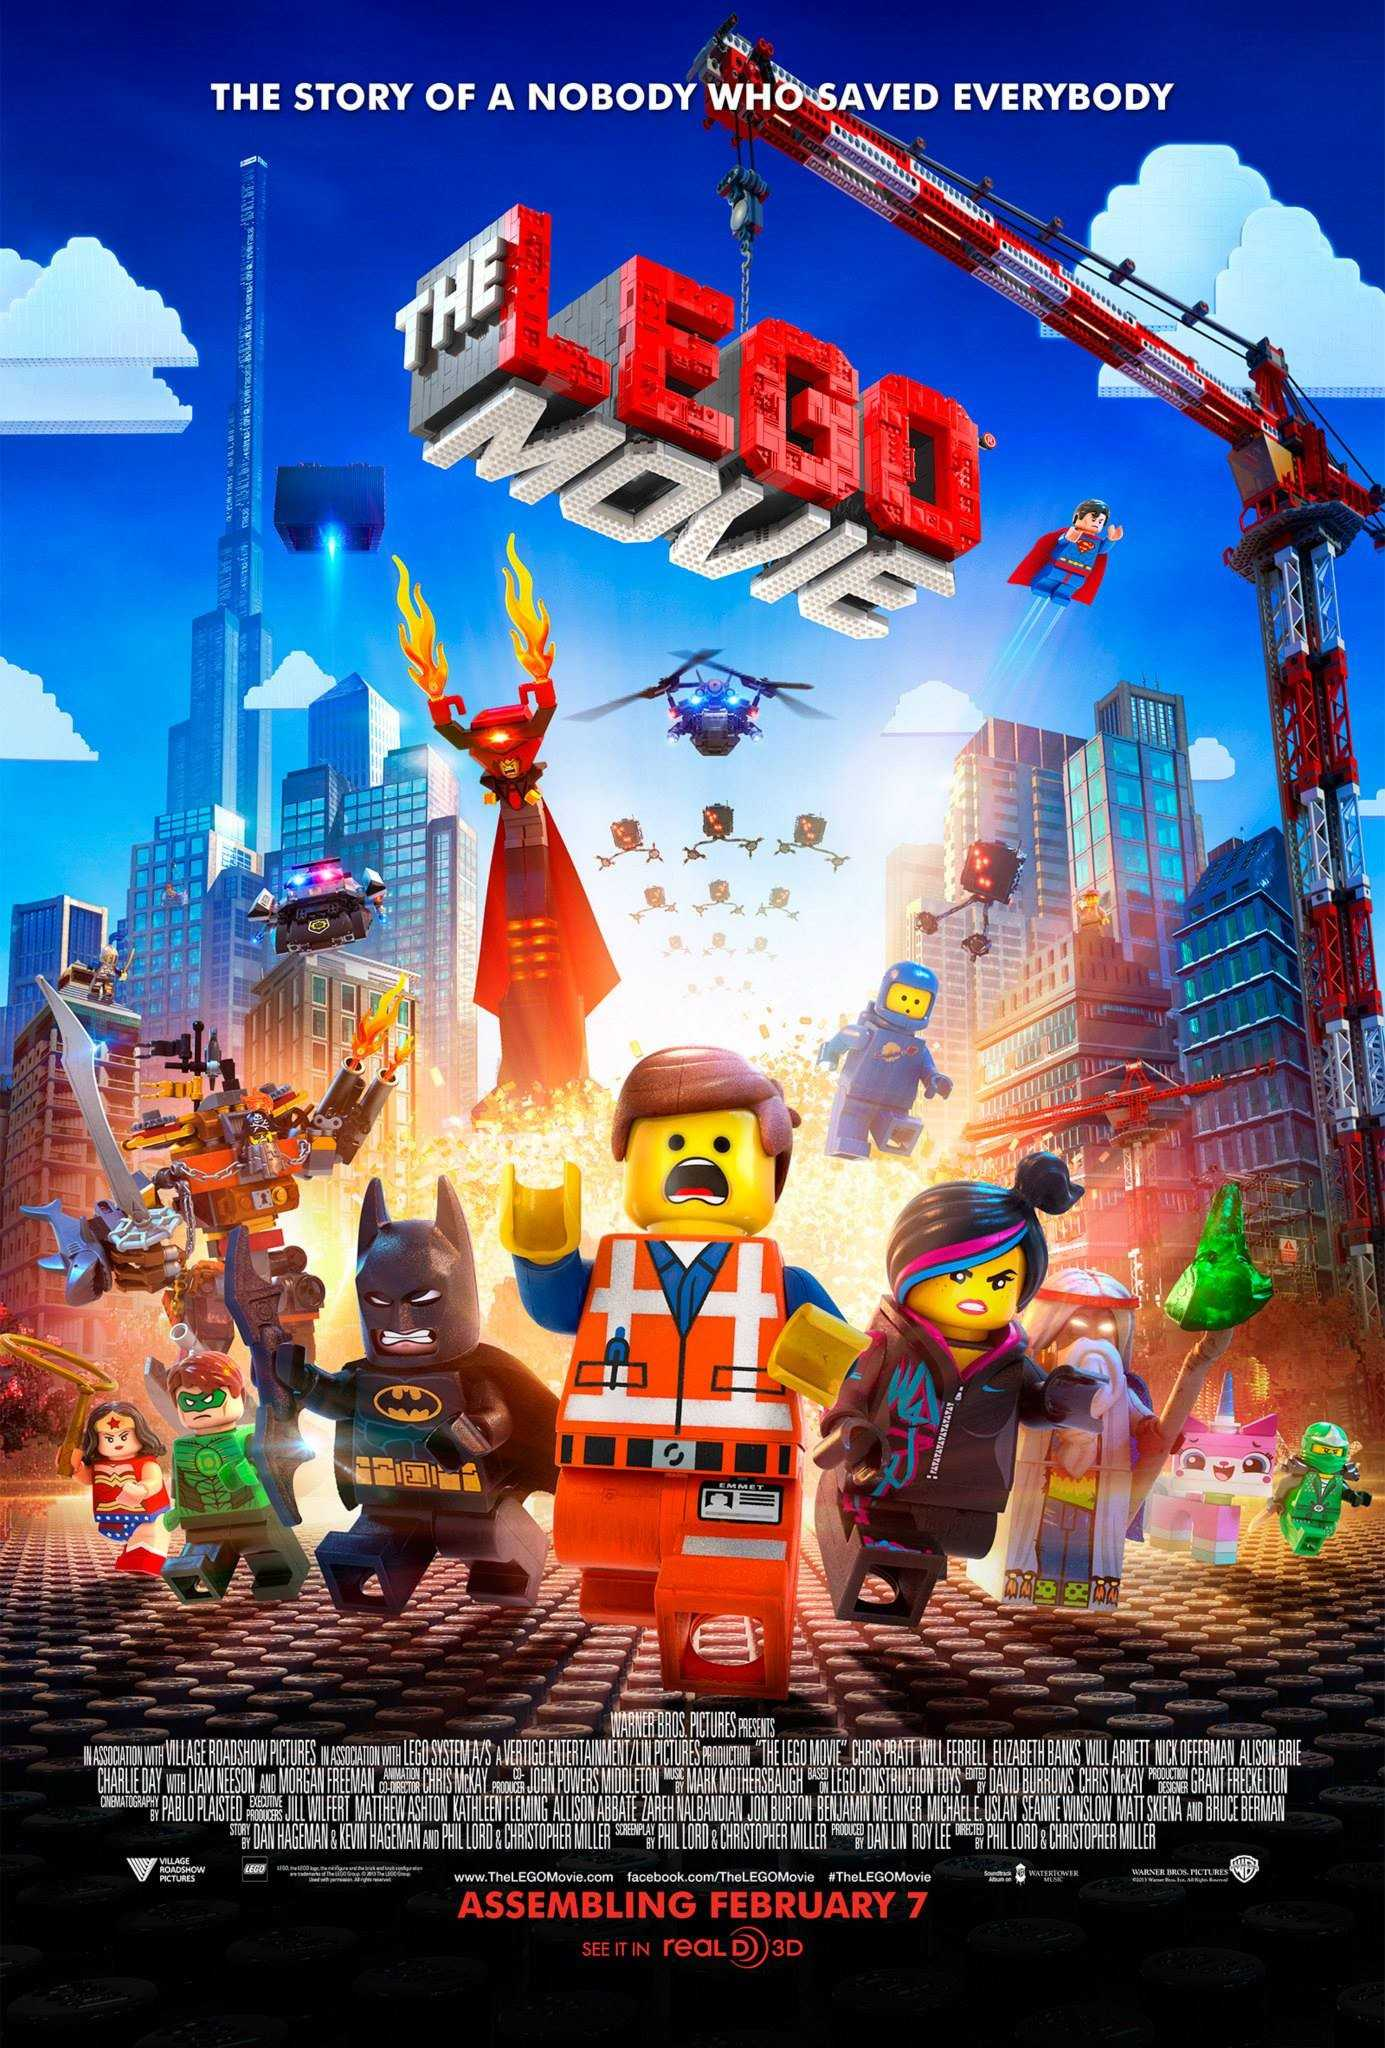 The Lego Movie in theaters now.